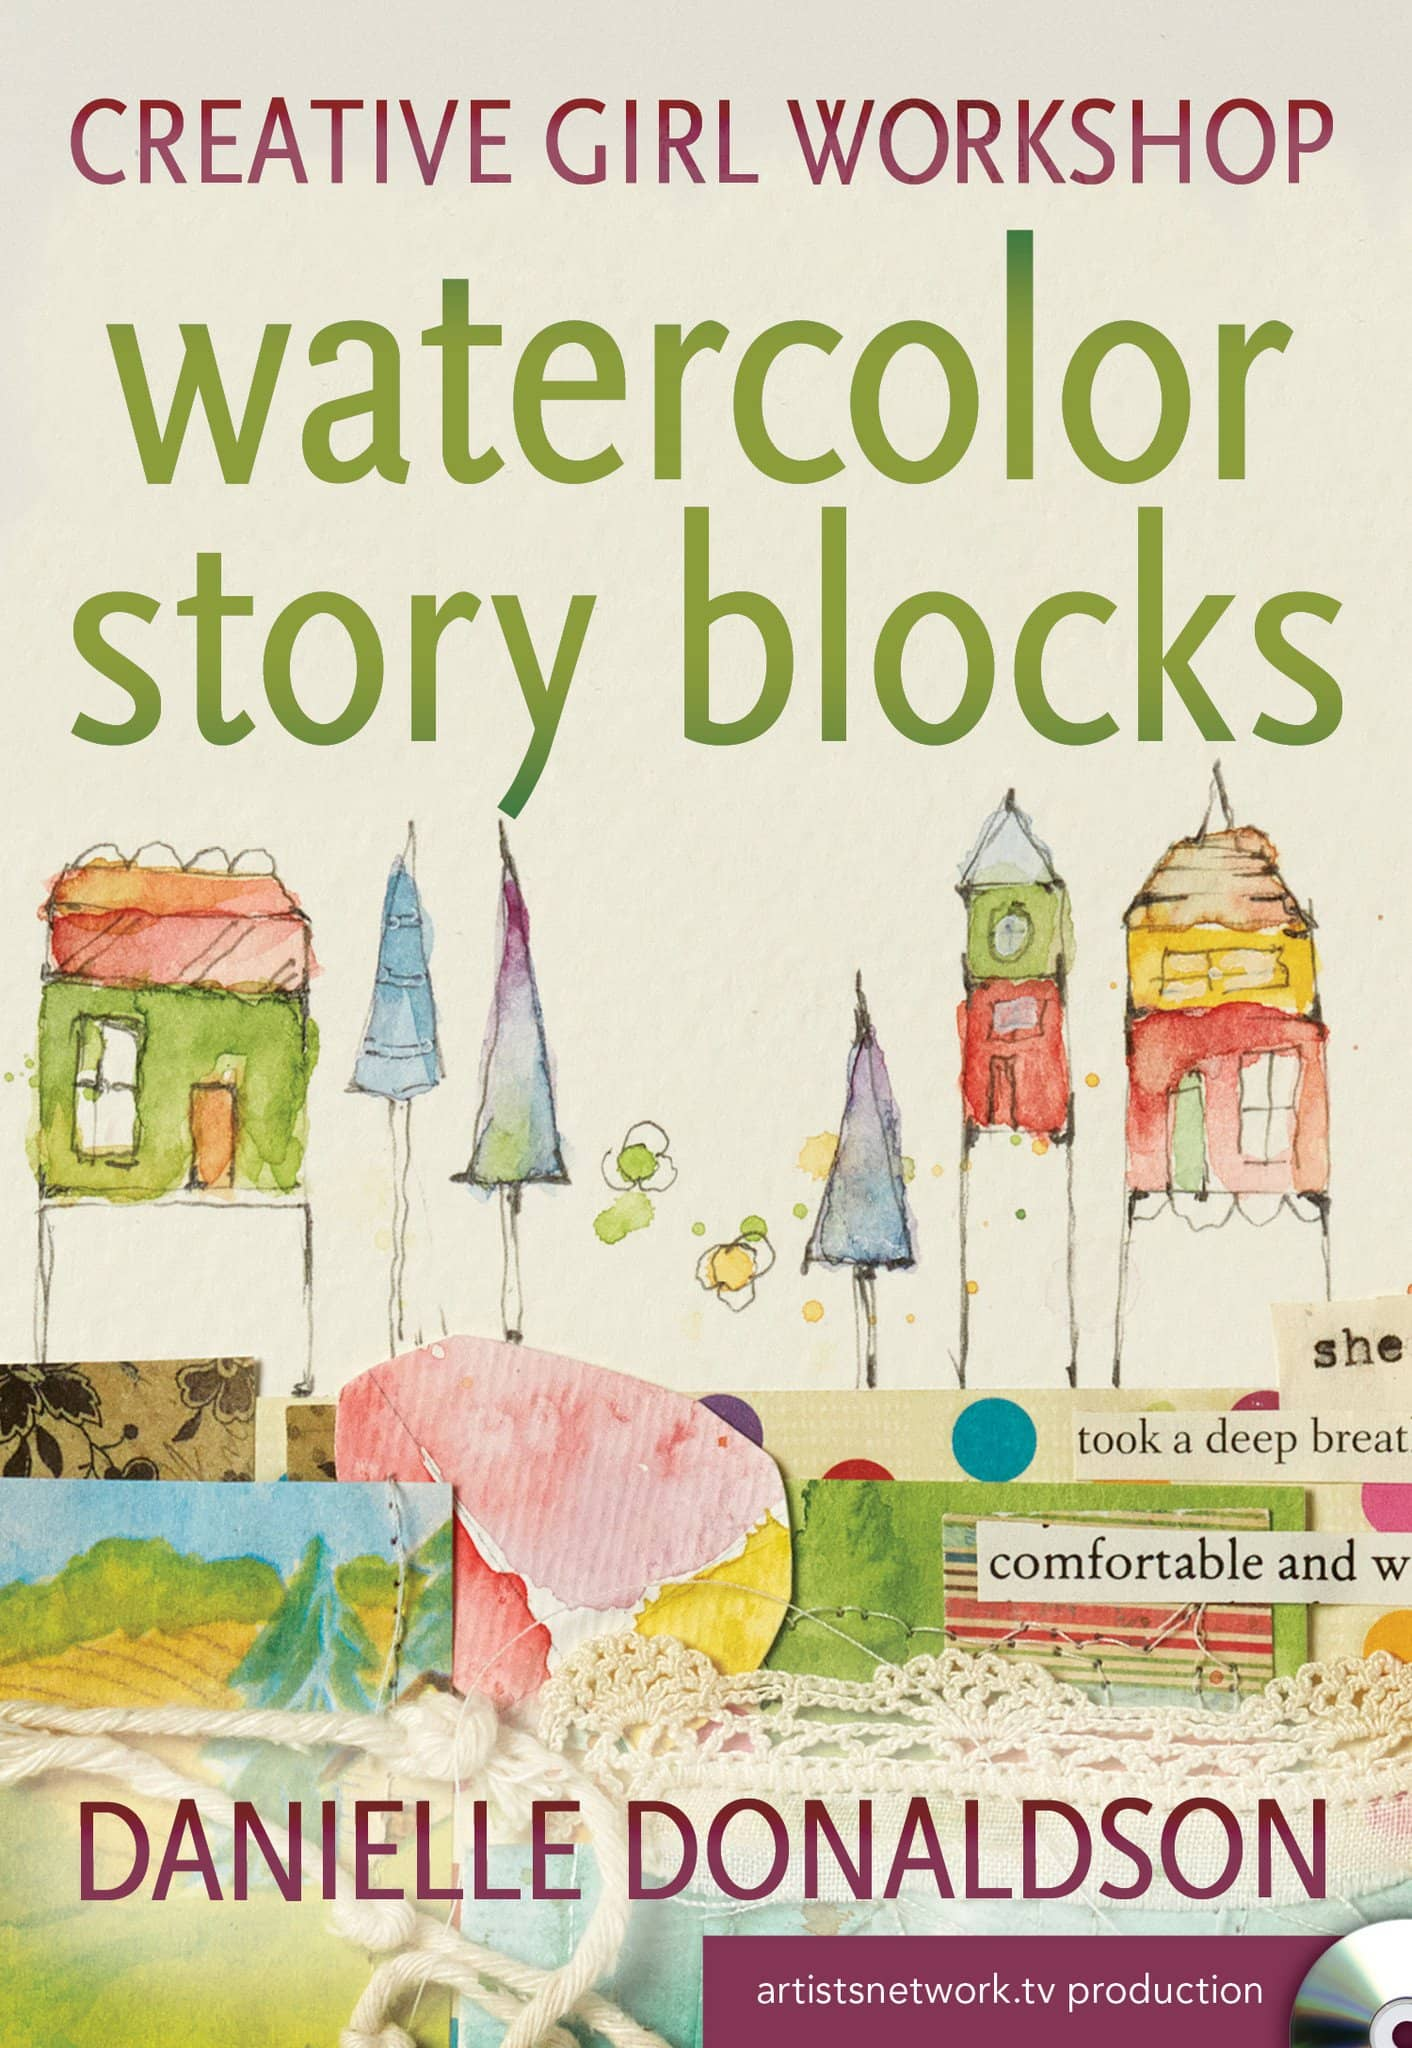 Creative Girl Workshop:  Watercolor Story Blocks with Danielle Donaldson